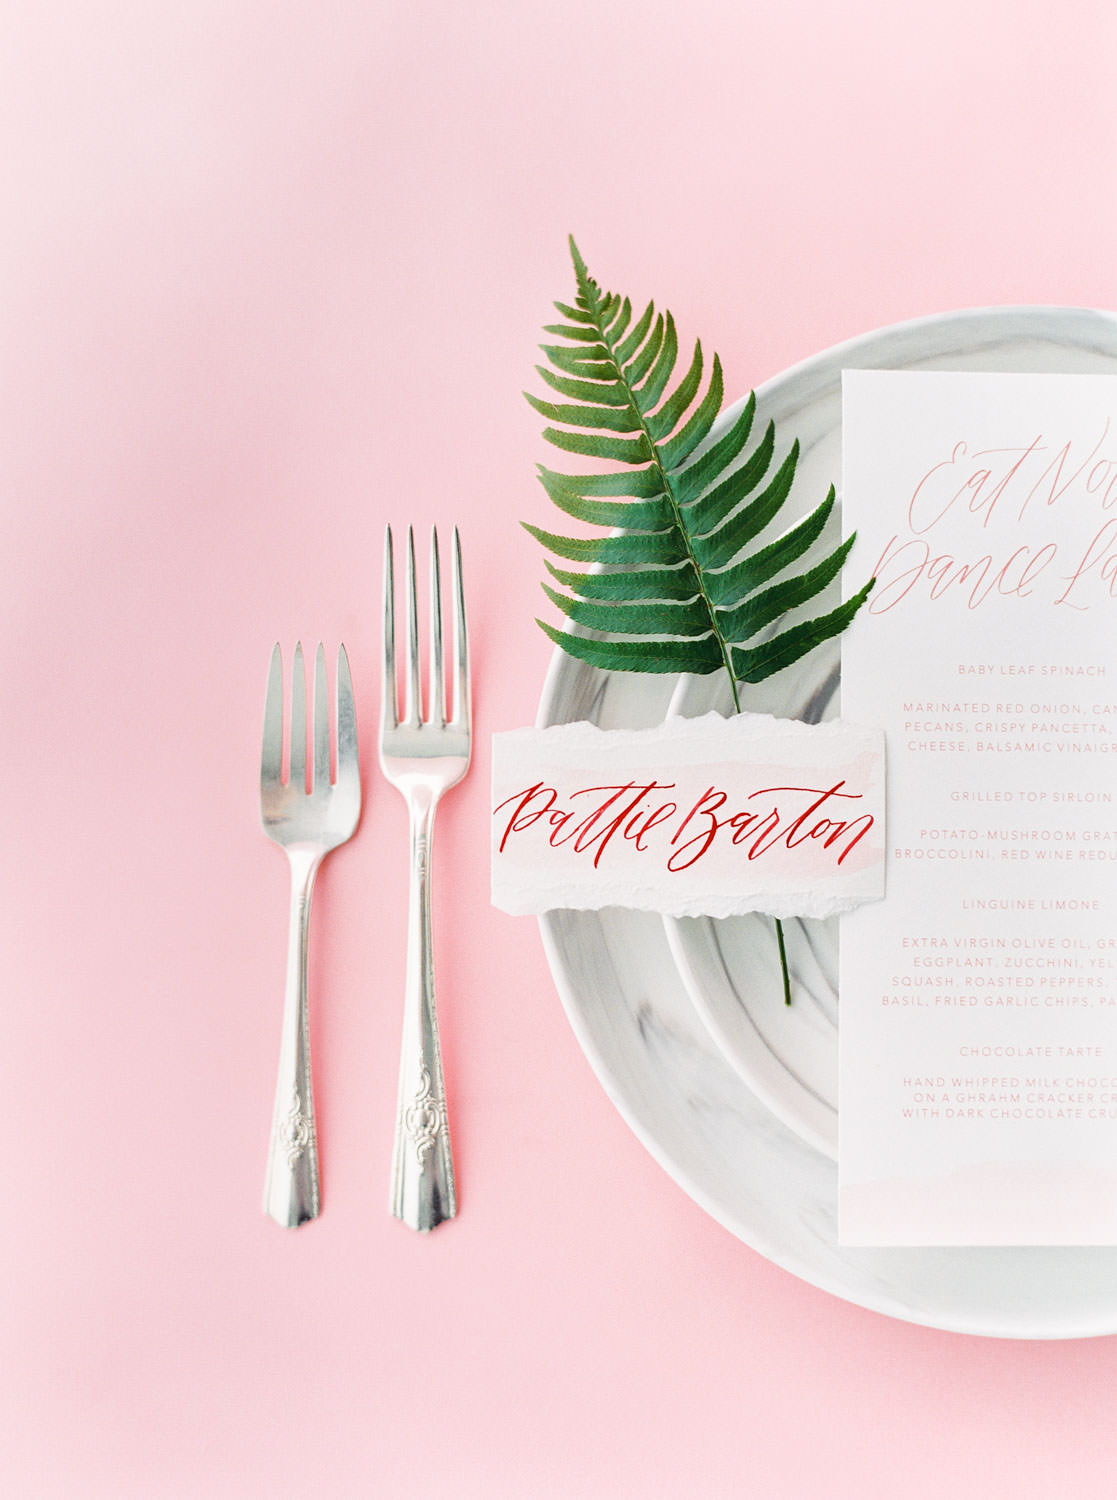 Wedding place setting with menu escort card on hand torn paper a fern and pink and clear glassware with marble plates, Pink backdrop wedding editorial on medium format Contax 645 Fuji 400h film by Cavin Elizabeth Photography